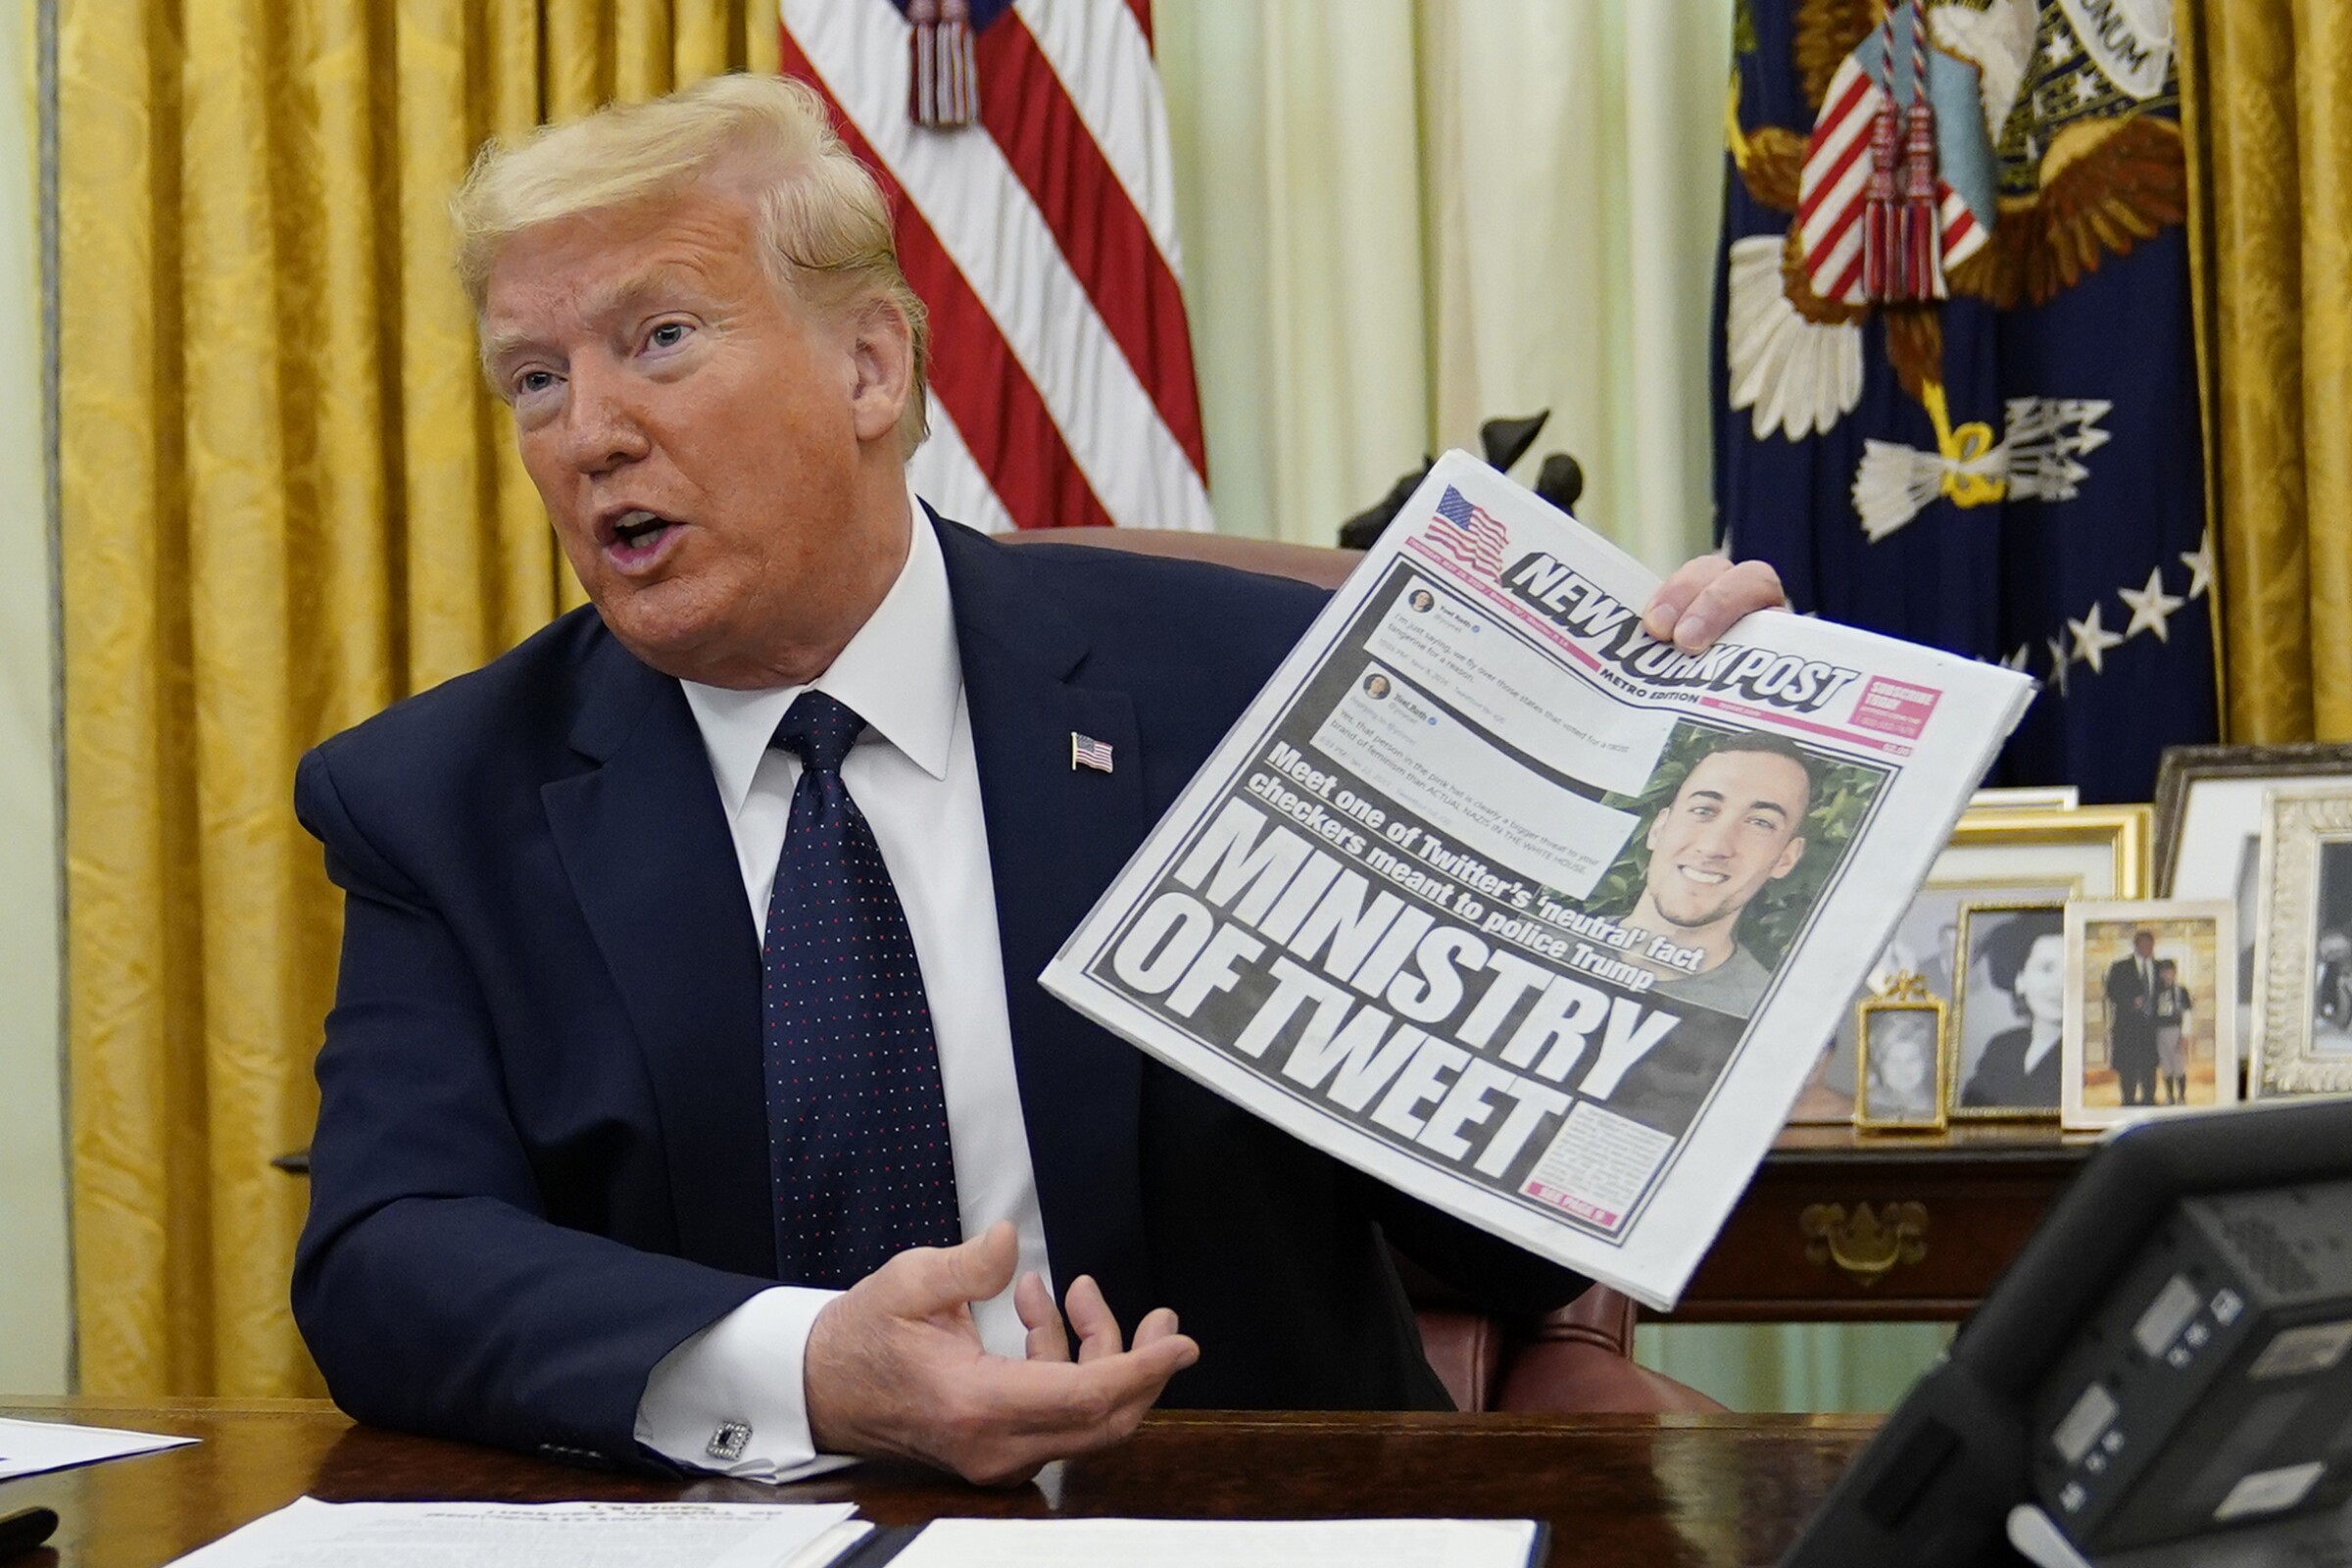 President Trump holds up a copy of the New York Post at the White House before signing an executive order aimed at curbing protections for social media giants.